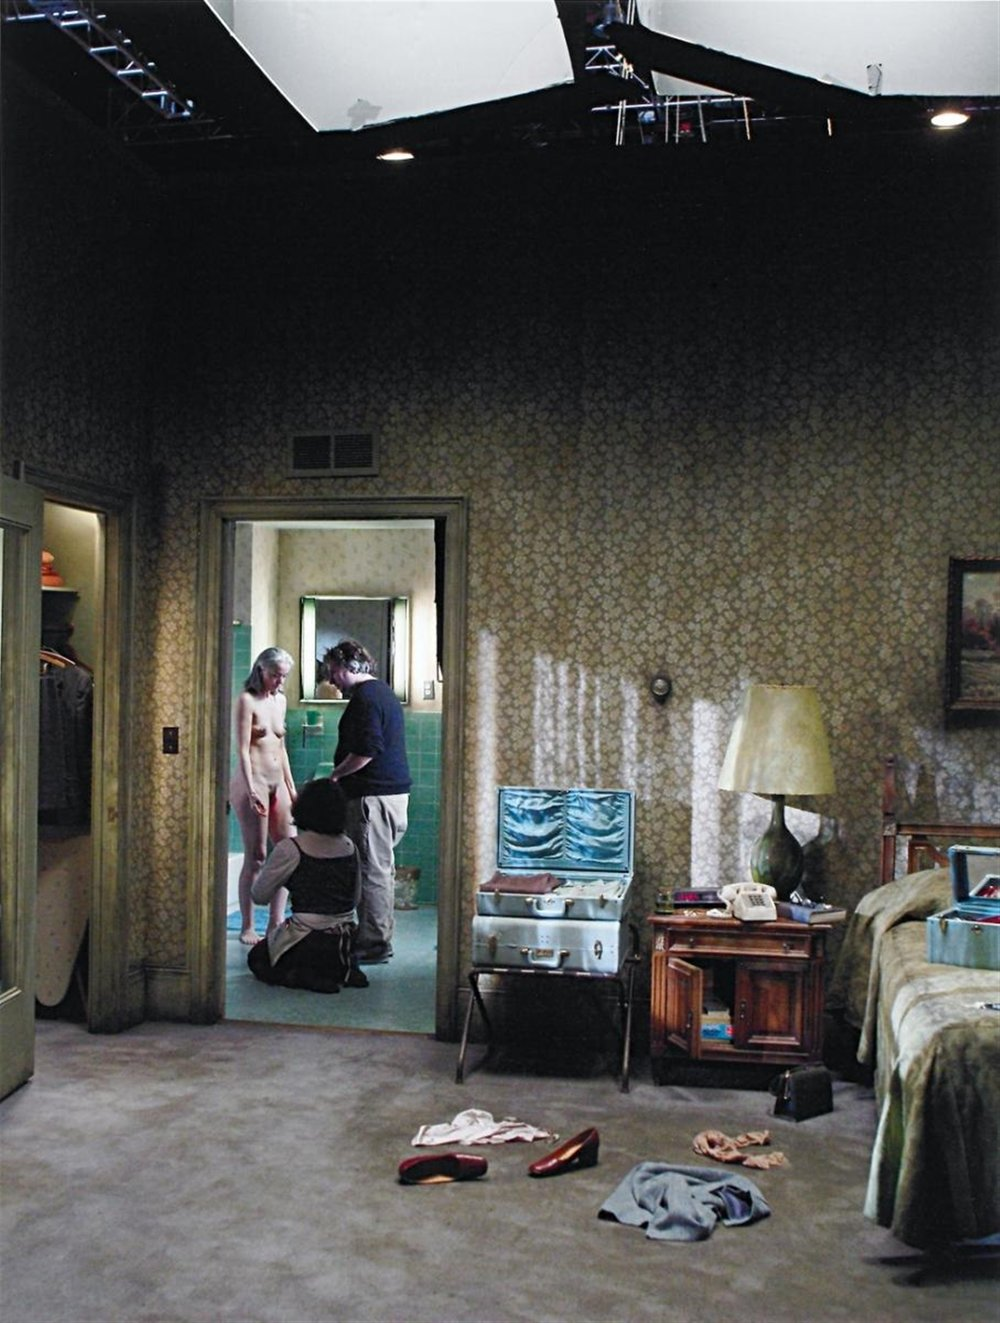 Gregory Crewdson. Production Still B (Beneath the Roses), 2005. Vintage C-print, 16 x 11 in.